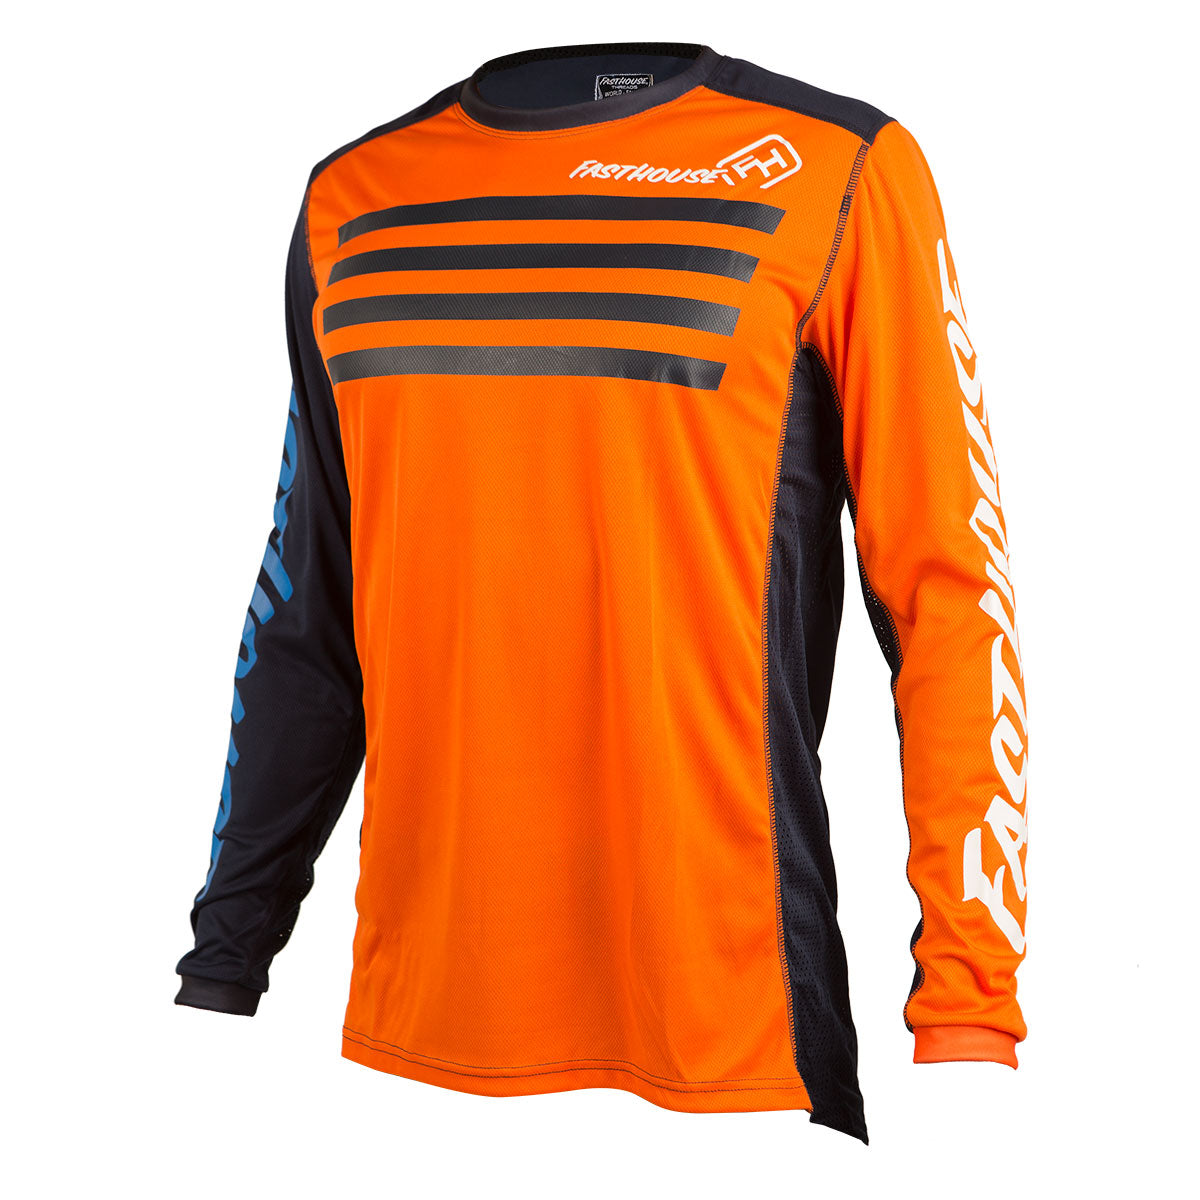 Fasthouse - Staple L1 Jersey - Orange